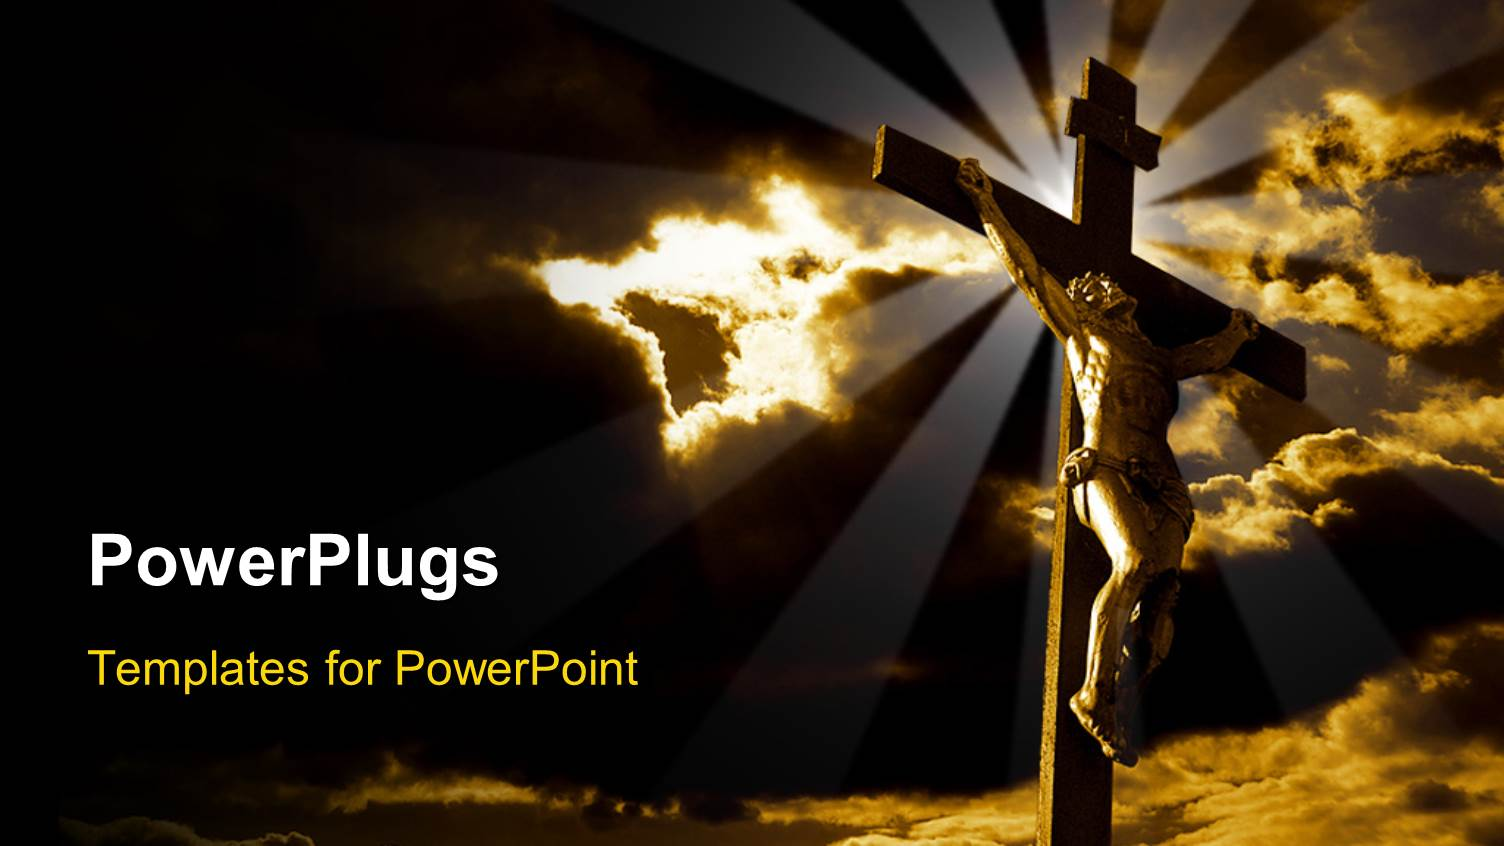 Jesus powerpoint templates crystalgraphics elegant presentation theme enhanced with the crucifixion of jesus with clouds in the background toneelgroepblik Image collections